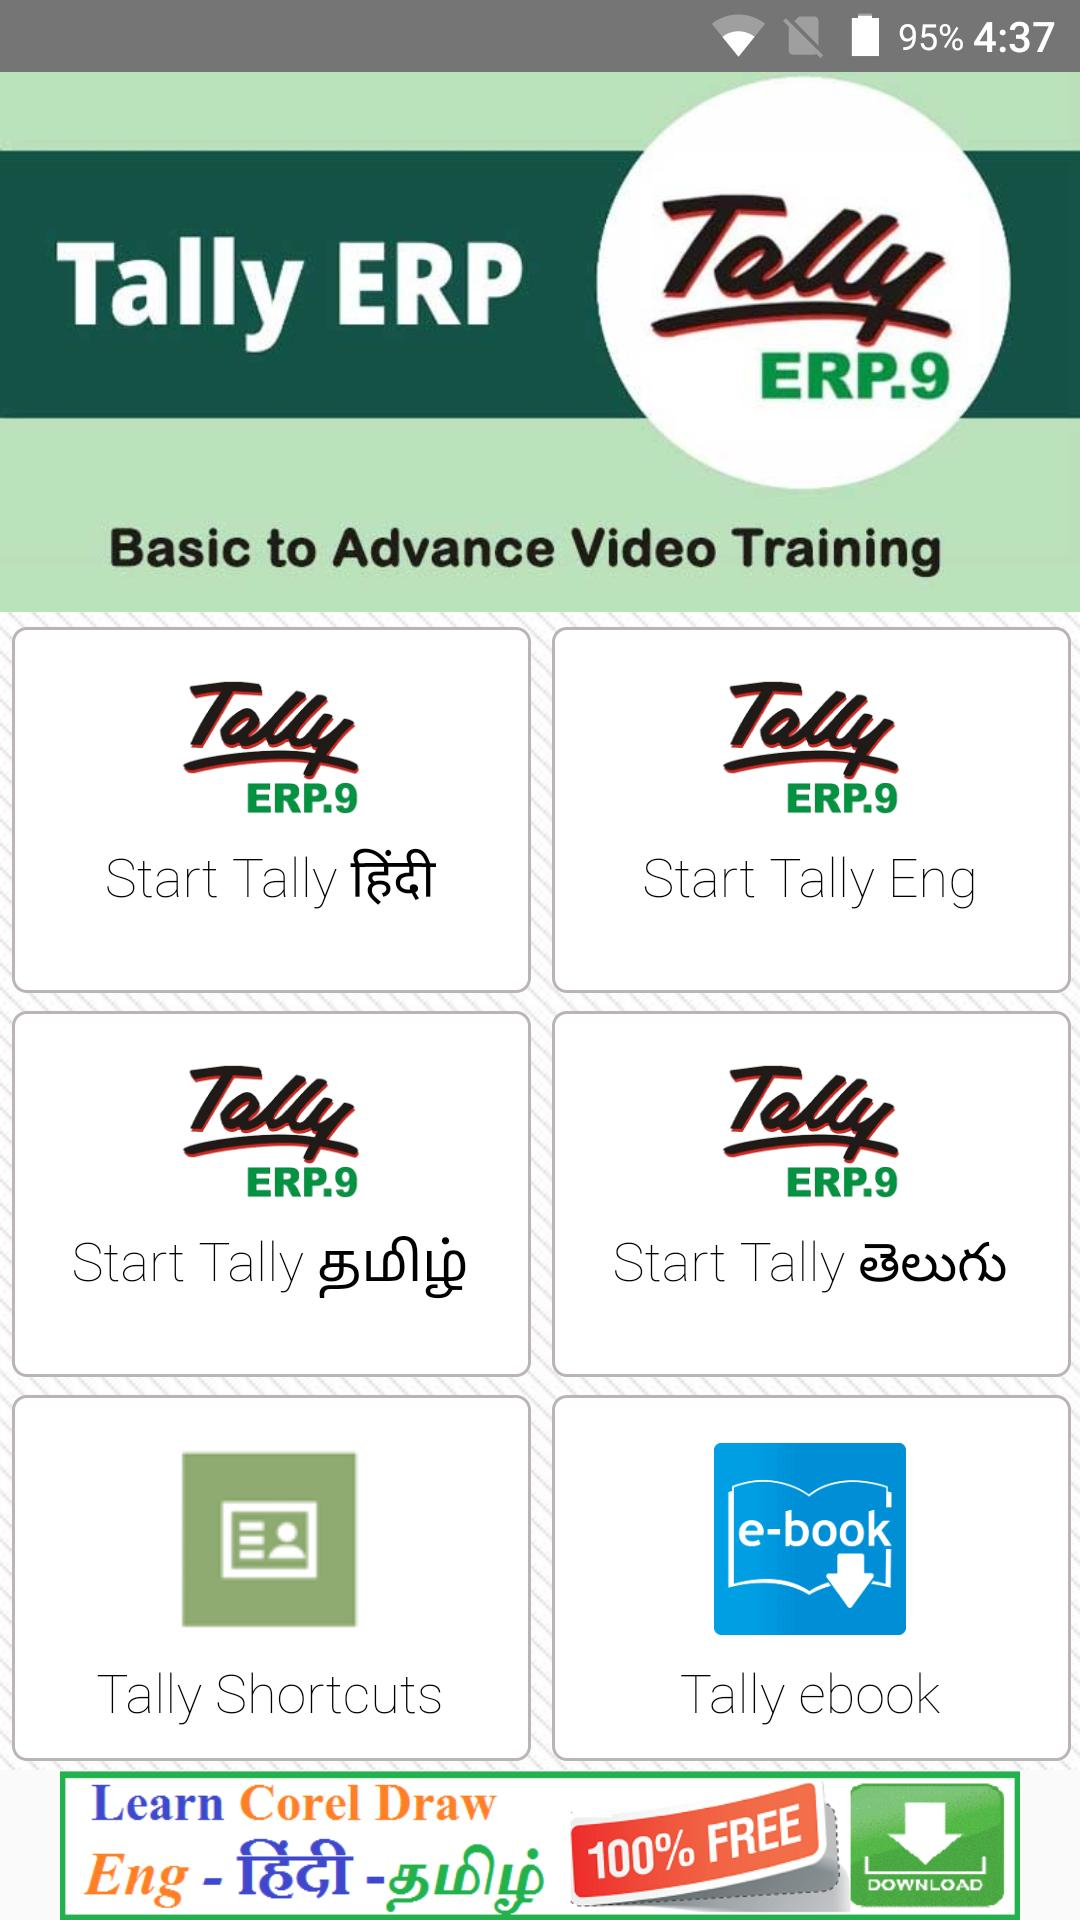 Tally erp 9 in tamil learn full course with gst for android.